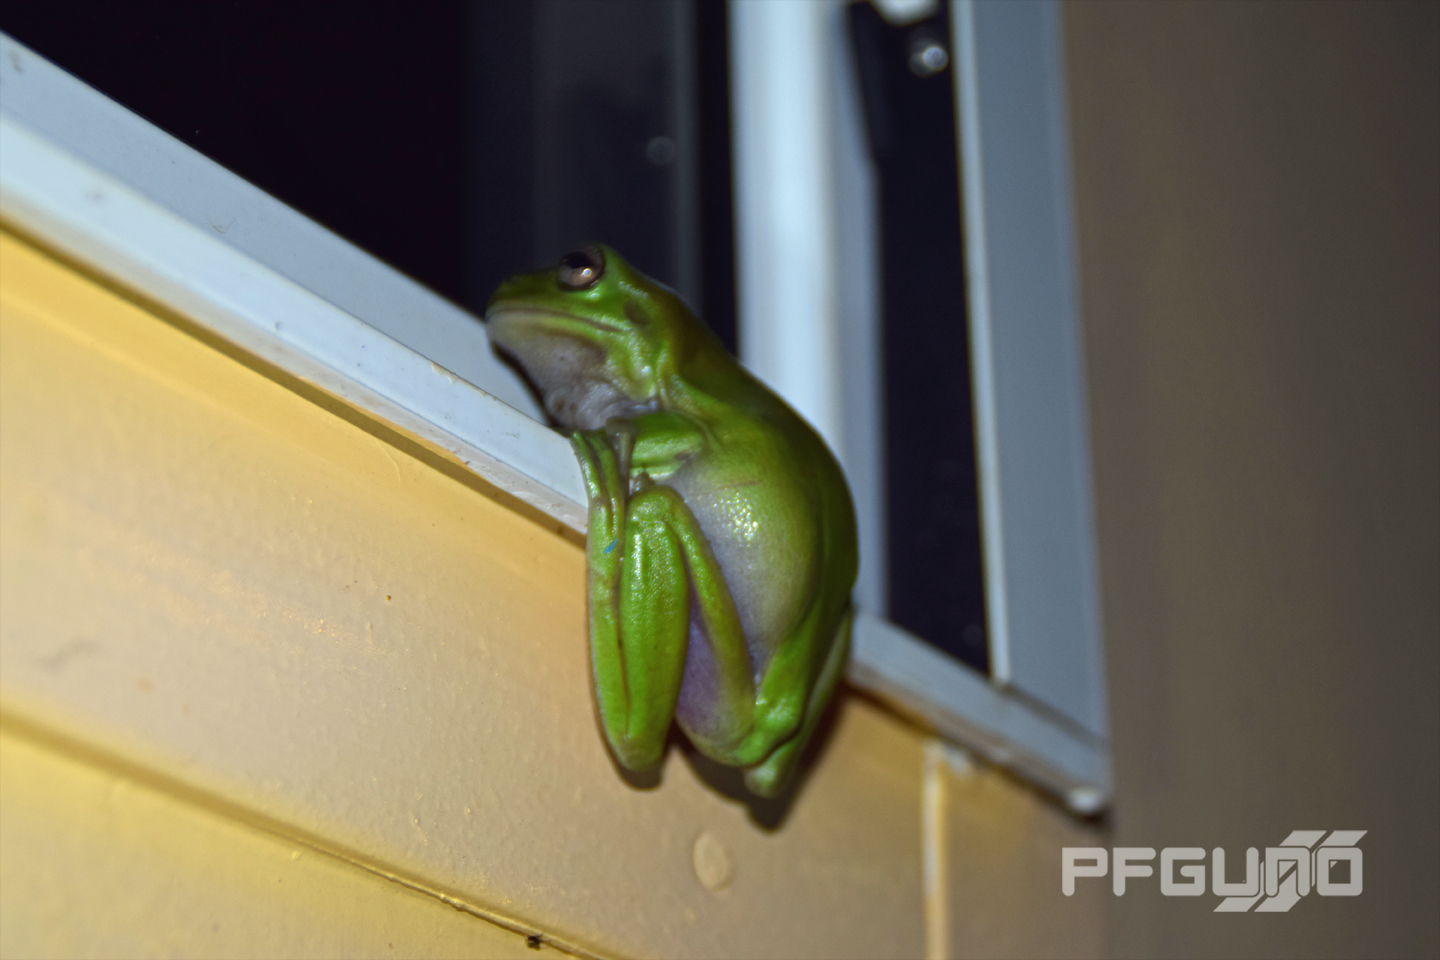 Green Frog On The Windowsill [SHOT 1]